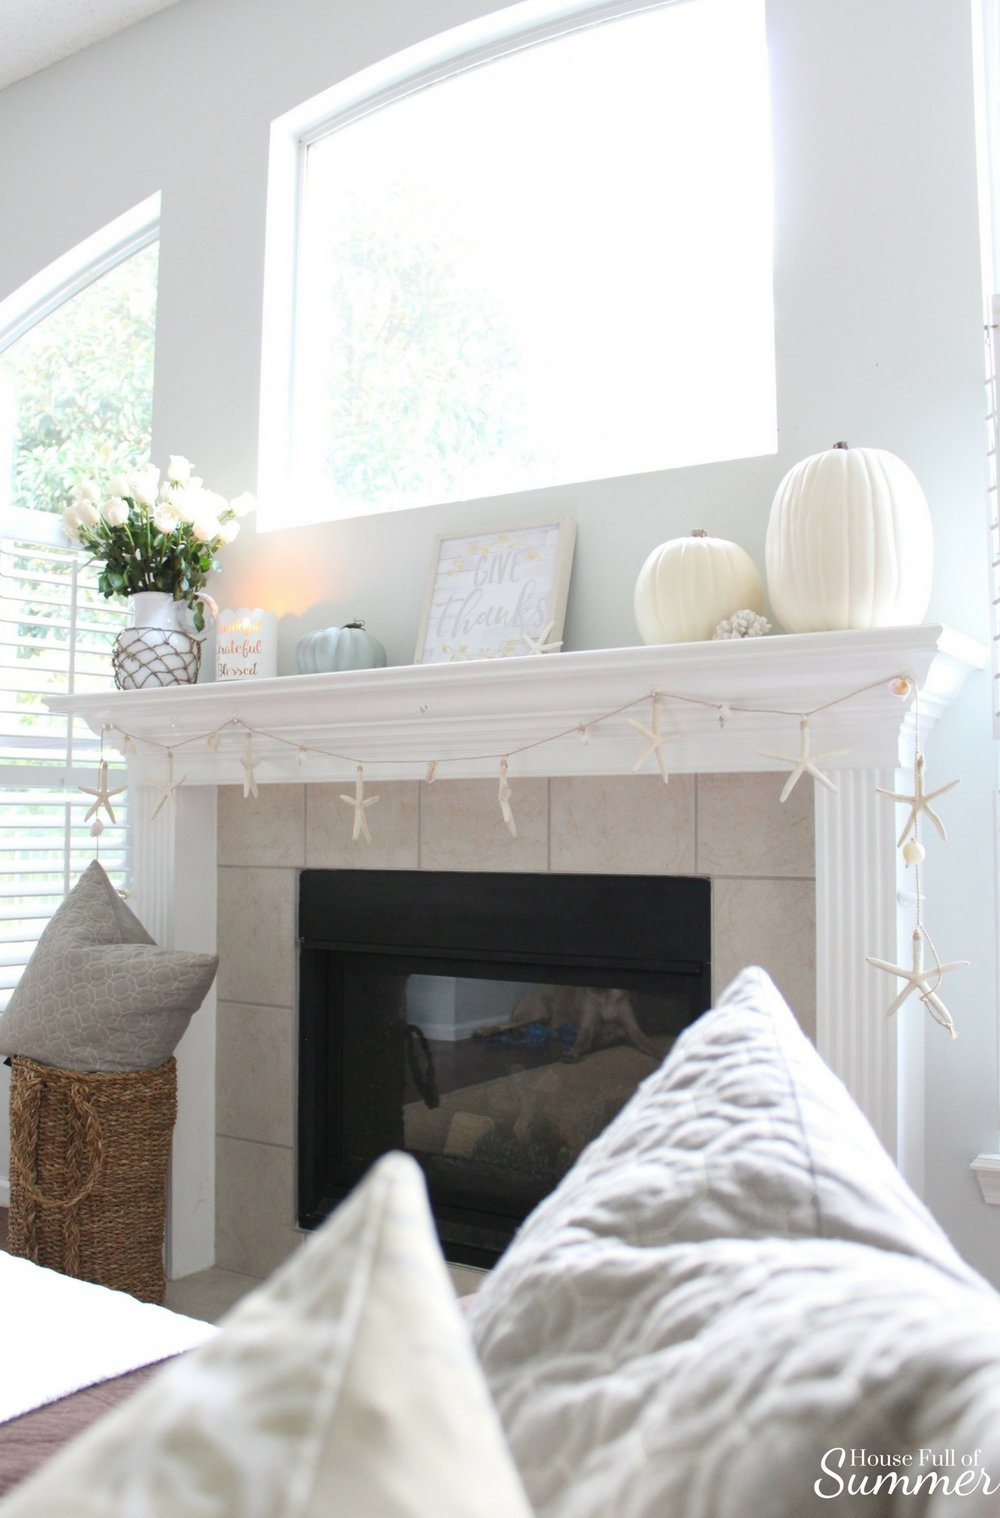 House Full of Summer: Fall Home Tour Blog Hop - Cozy, Coastal, Chic  Family Room or Living Room fall decorating ideas, fireplace, neutral interior, white pumpkins,  fall mantel ideas, starfish garland,  natural decor